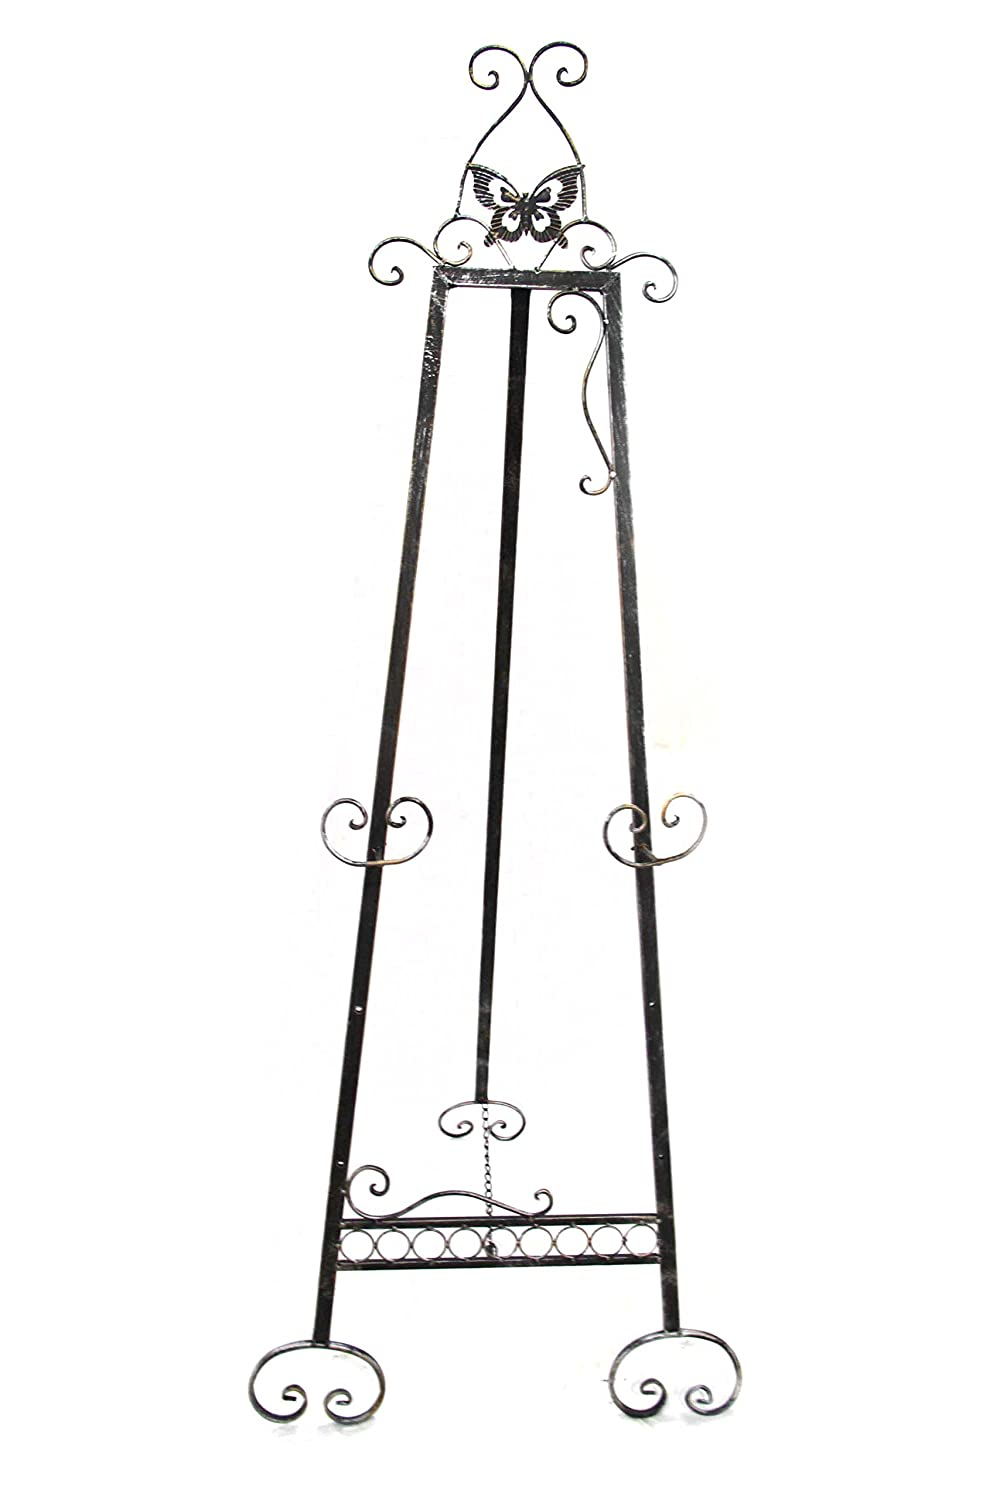 Amazon.com: Designstyles - Caballete de metal decorativo ...